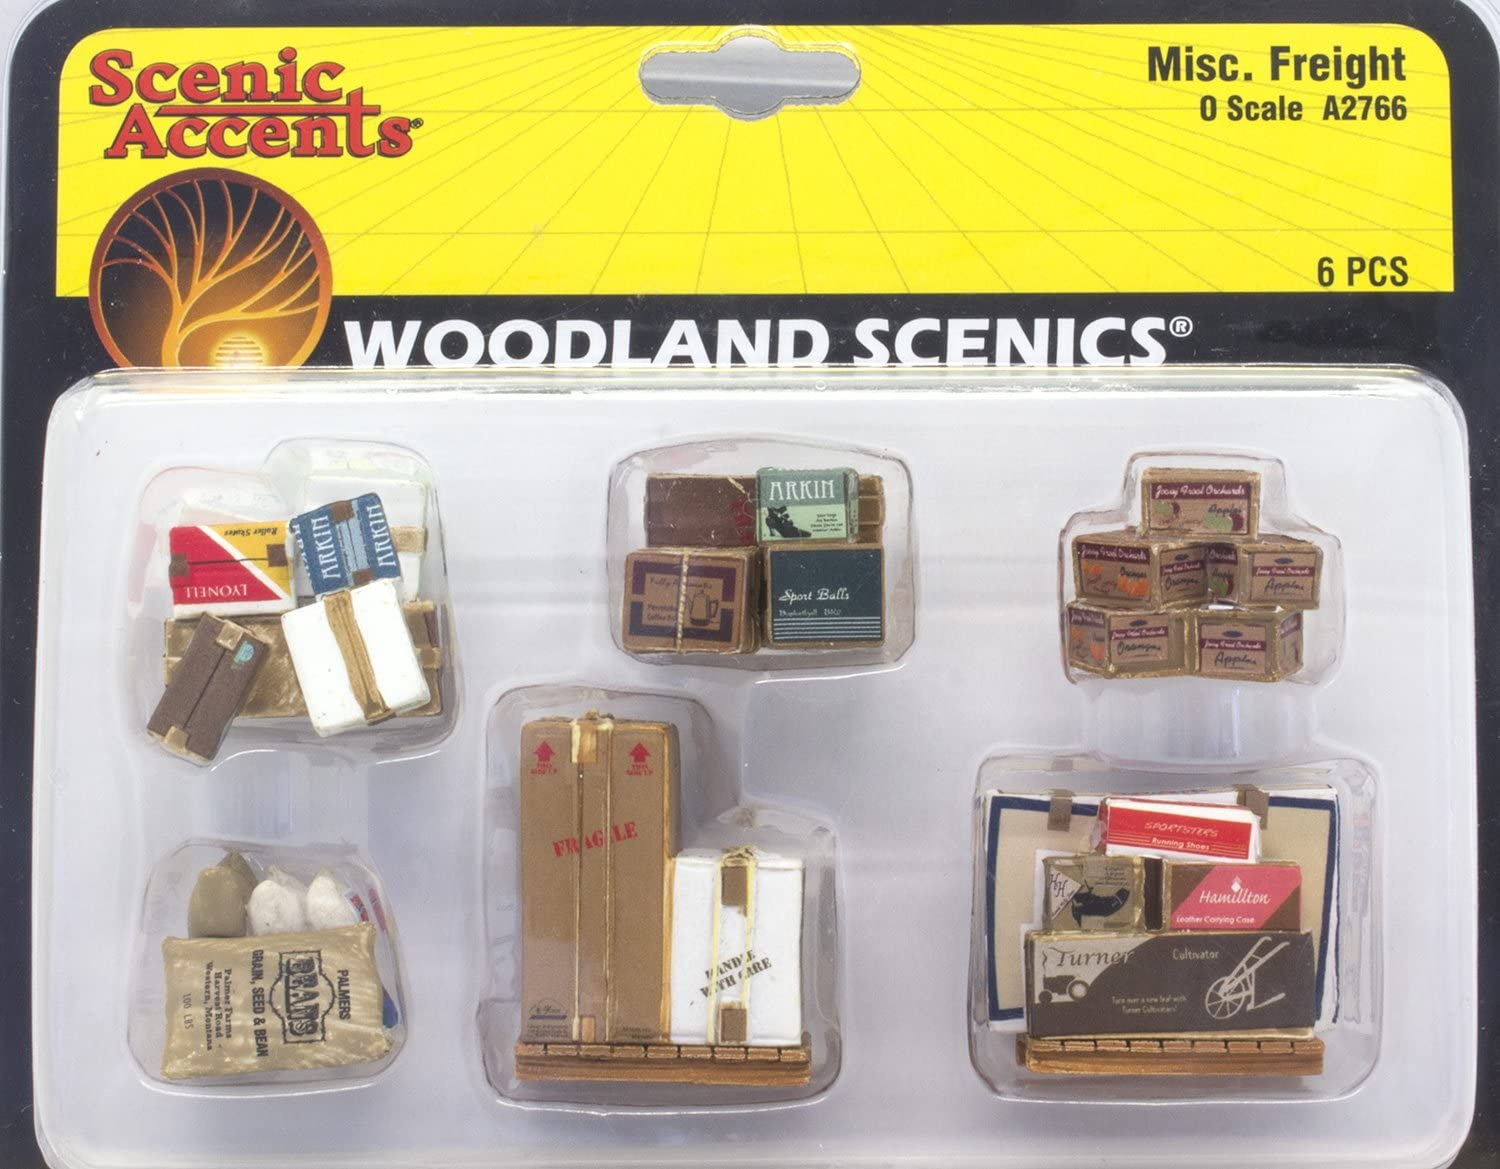 Scenic Accents Miscellaneous Packaged Freight Boxes, Crates, Sacks Total 6 diff. HO Scale Woodland Scenics